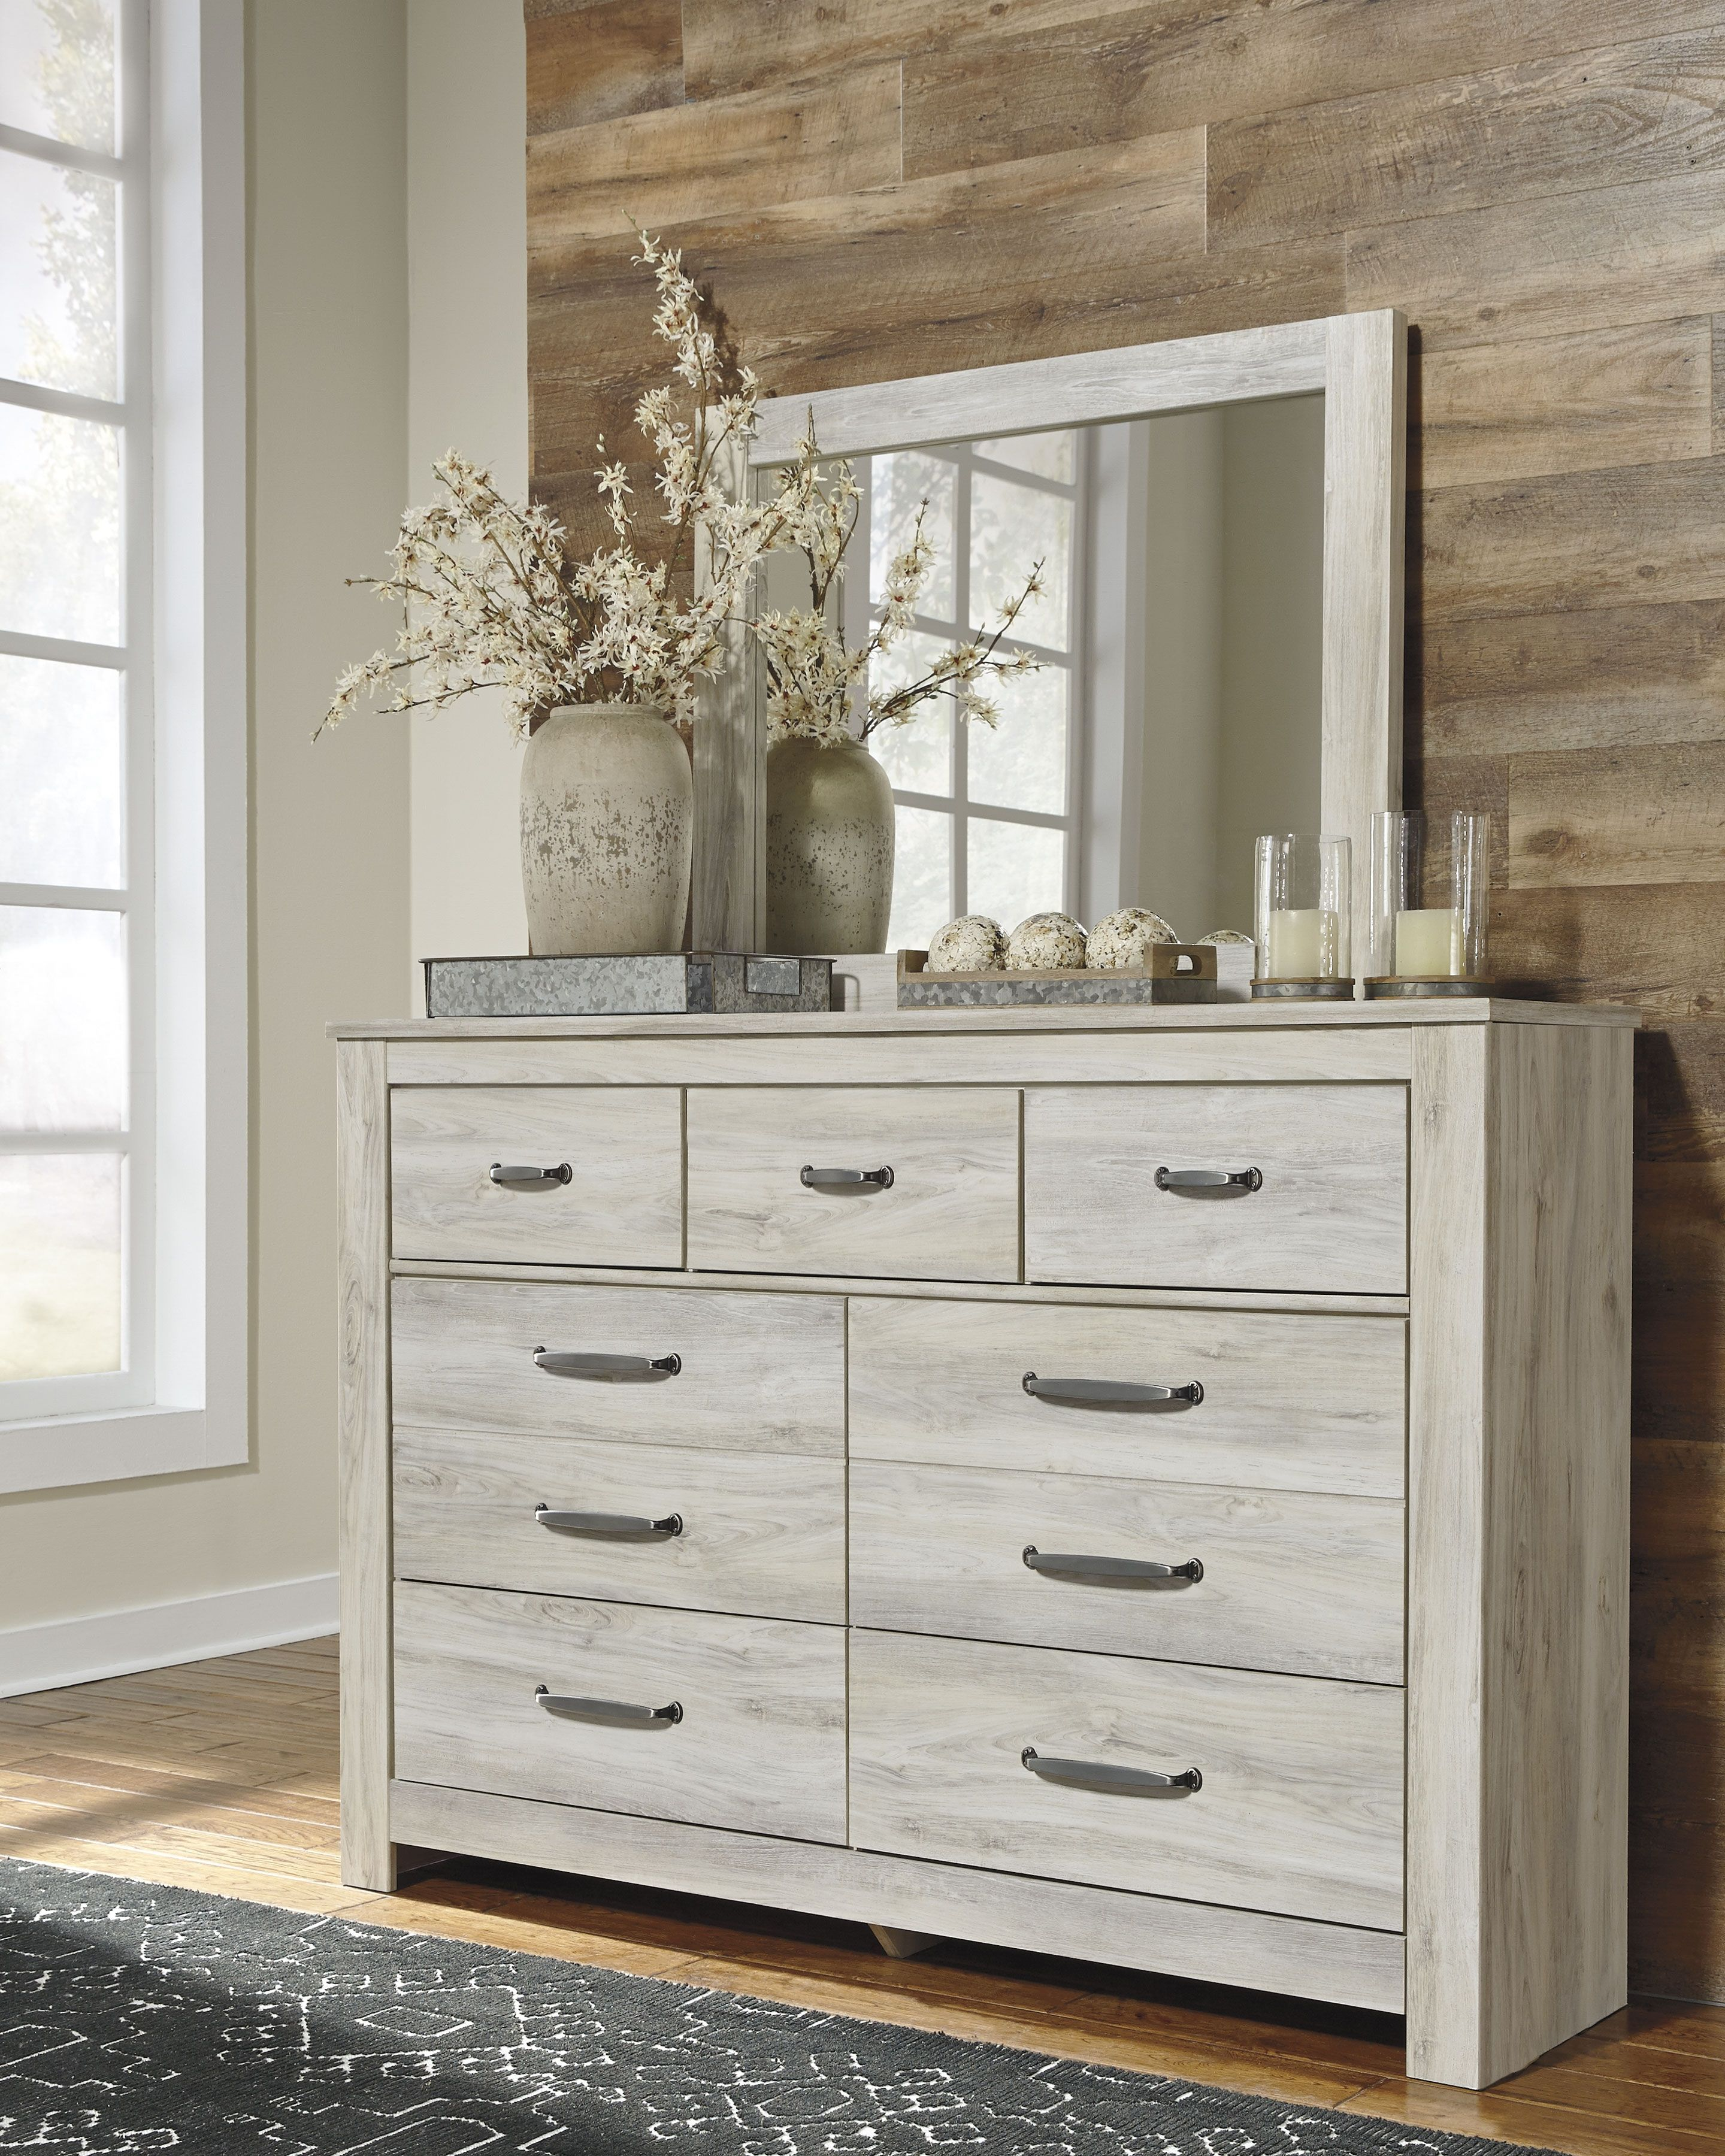 17 Awesome 8 Drawer Whitewash Dresser In Room For You Dresser Decor Bedroom Dresser Decor Dresser Design